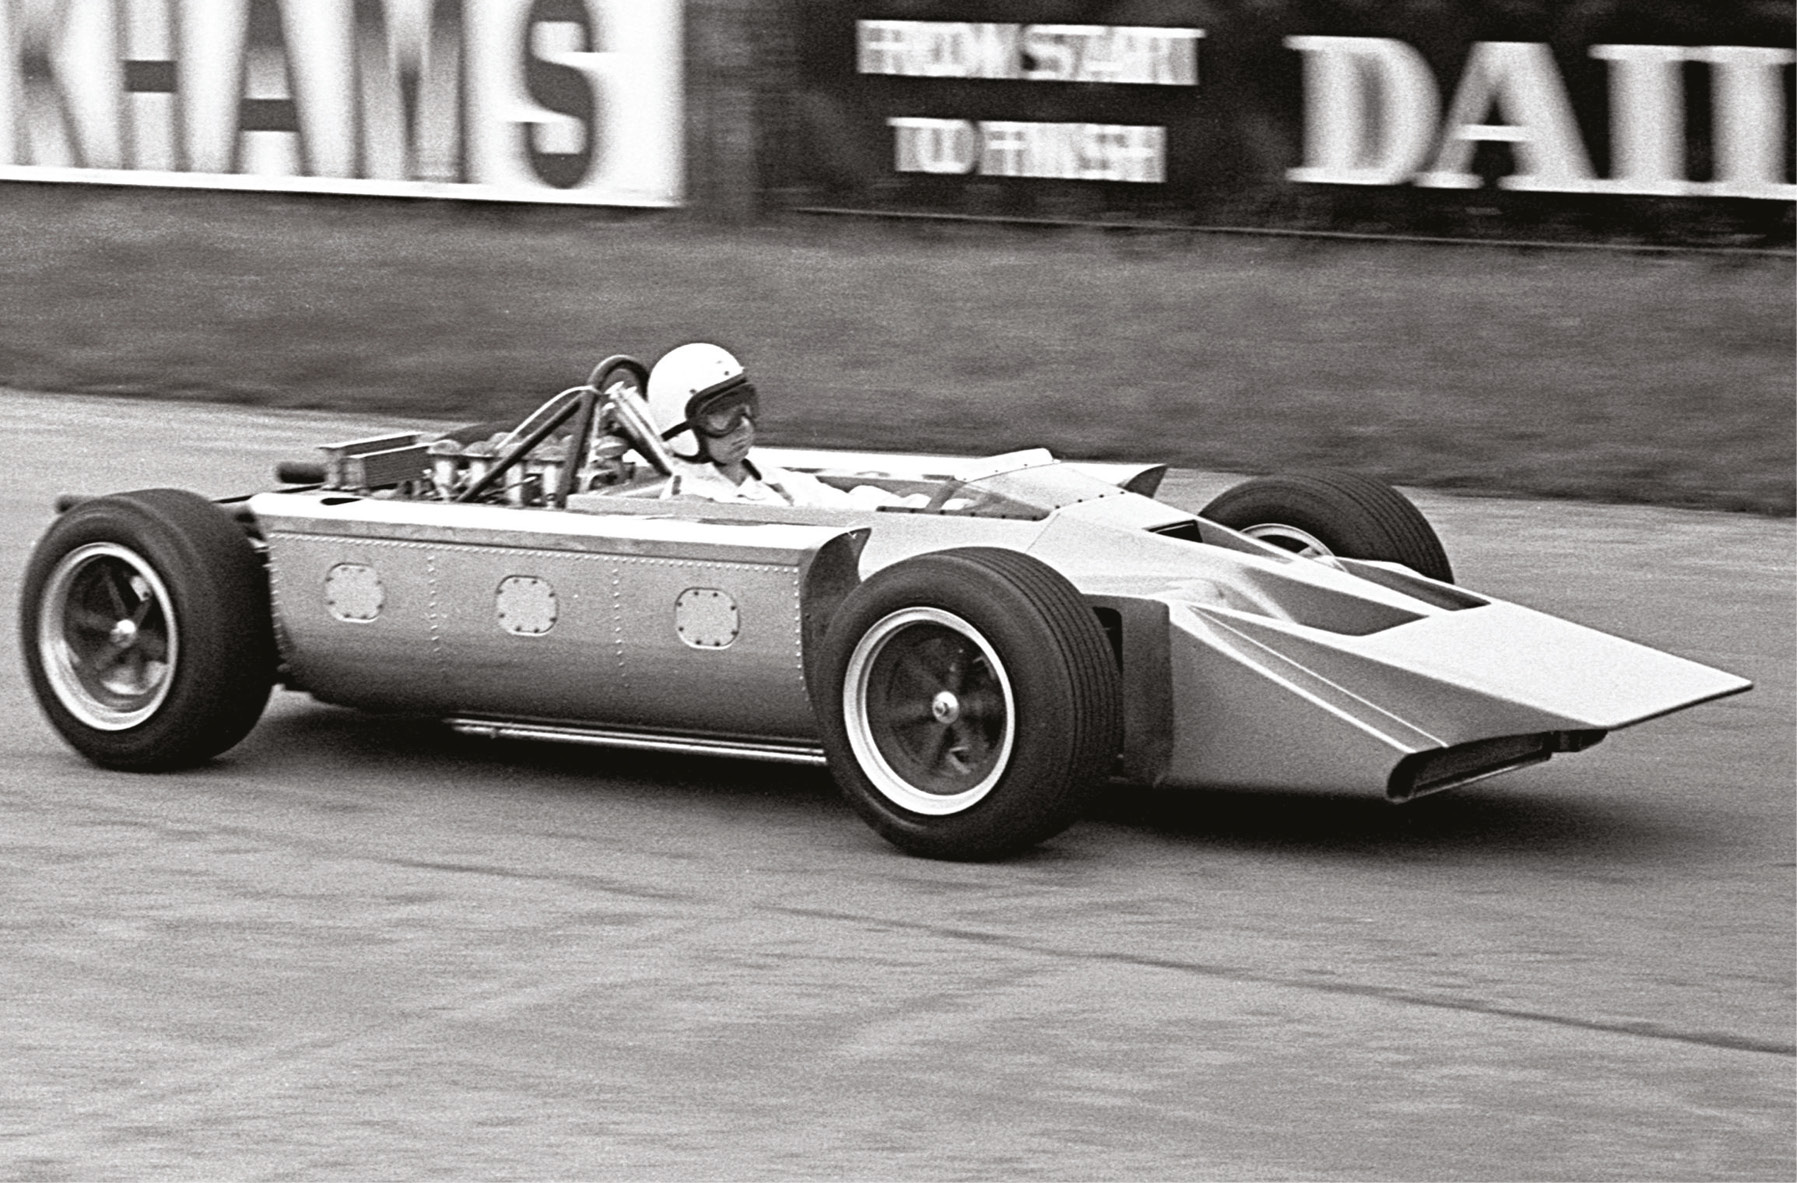 Costin, pictured, did much of the development work himself, but stars like Jackie Stewart also tried the 4WD beast.